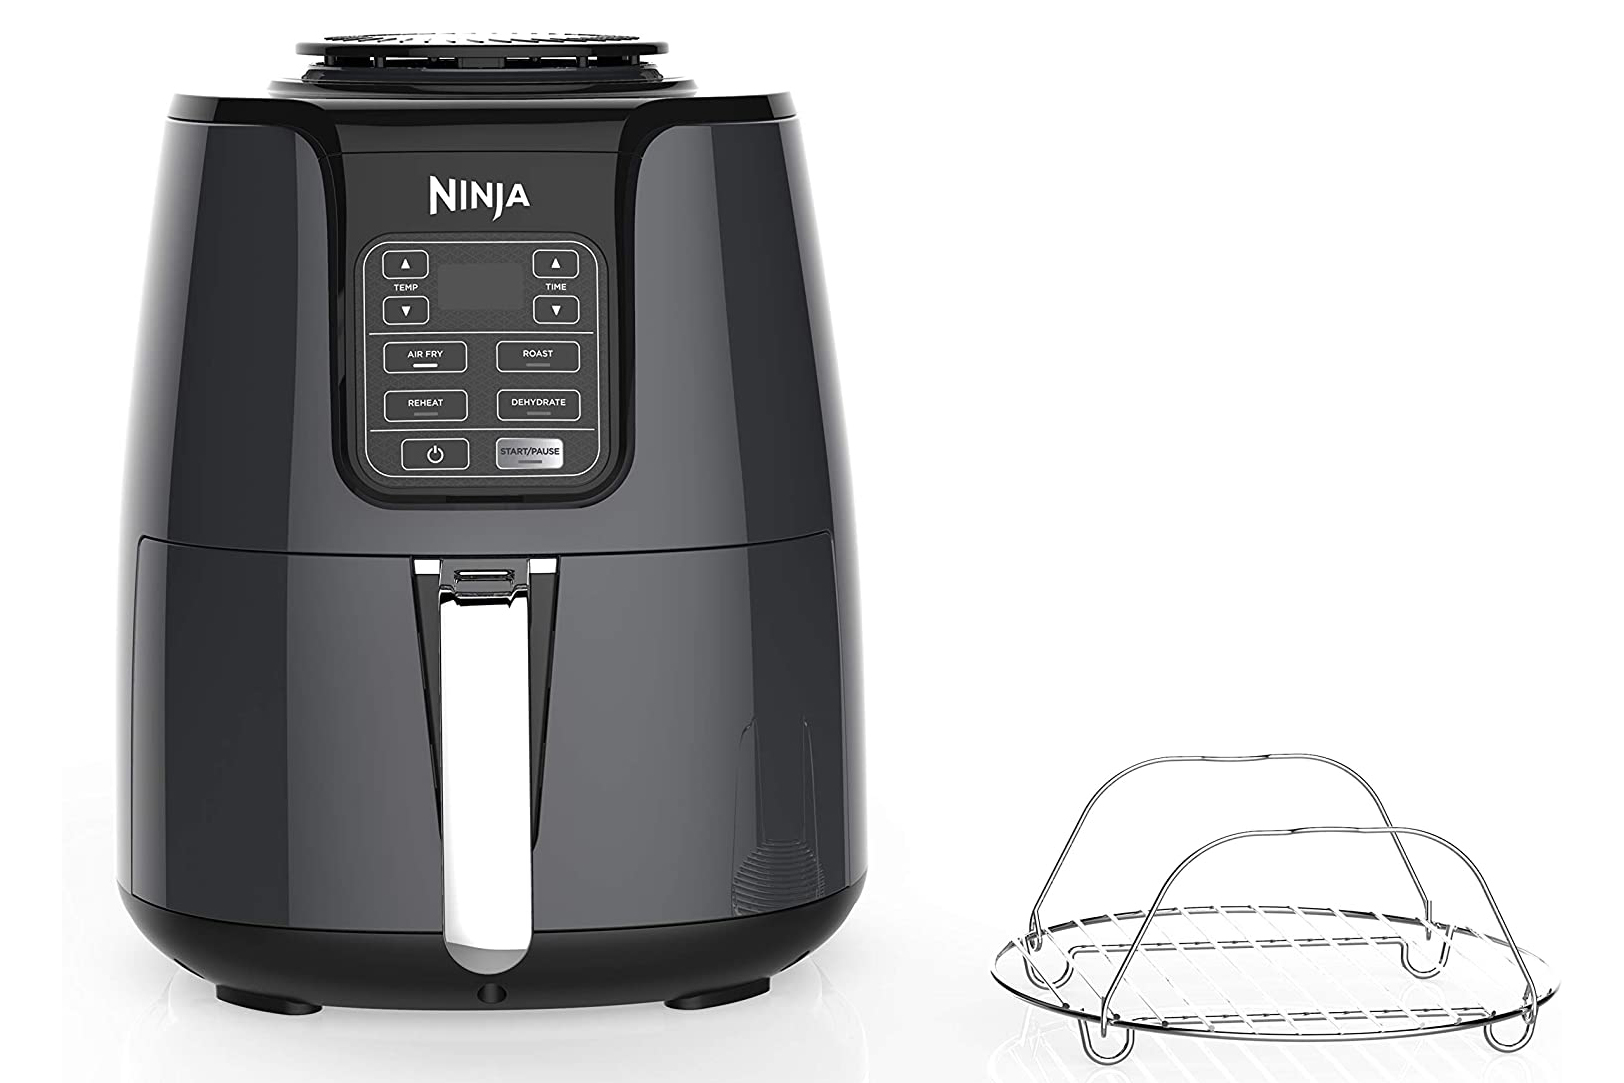 Ninja Air Fryer with basket on white background